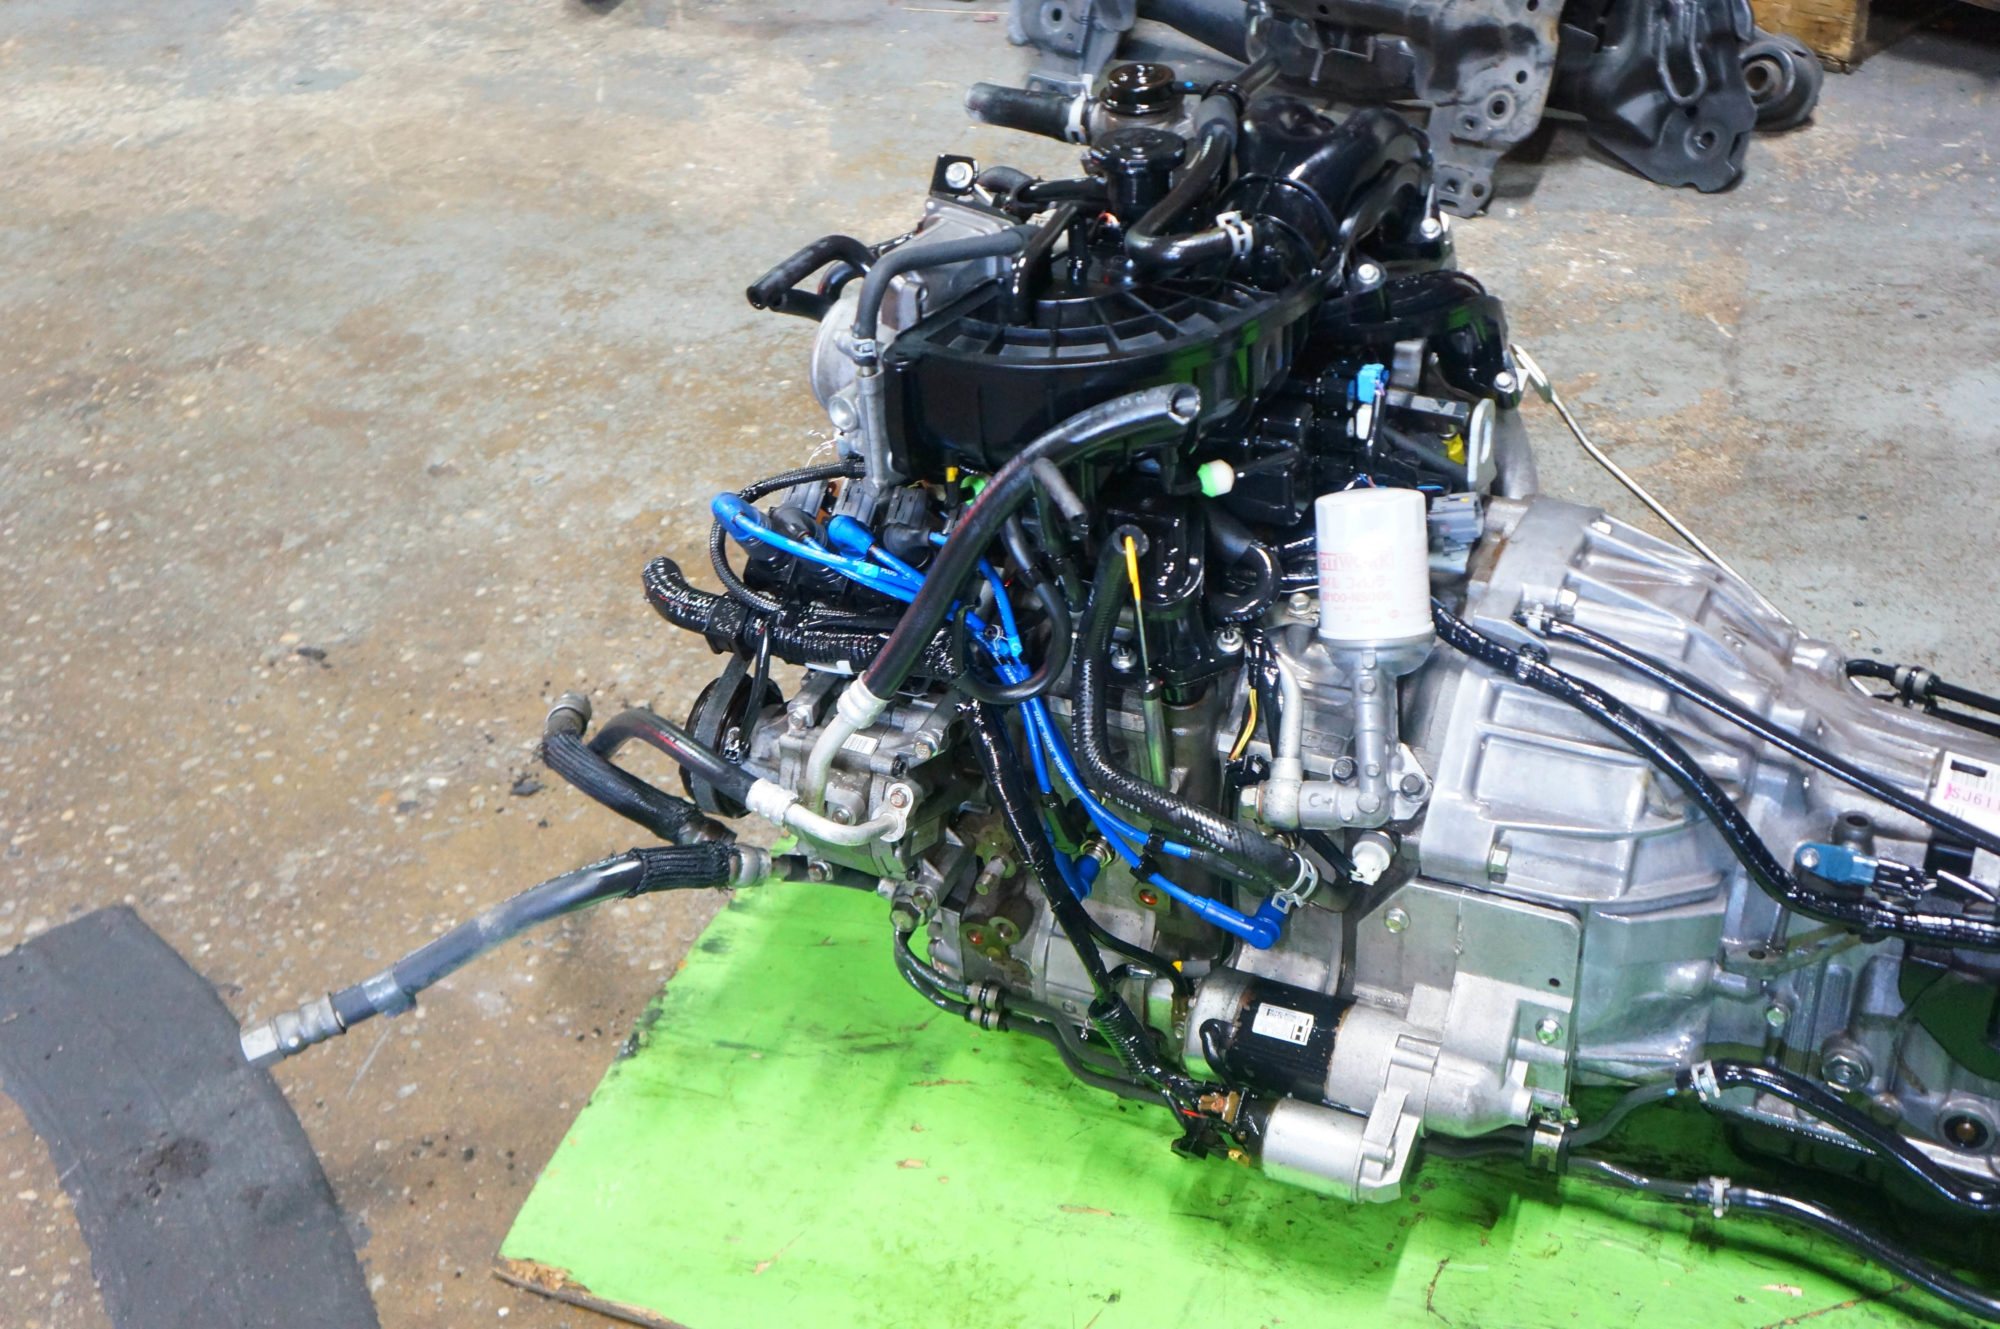 JDM 13B RX8 6 PORT ENGINE WITH AUTOMATIC TRANSMISSION